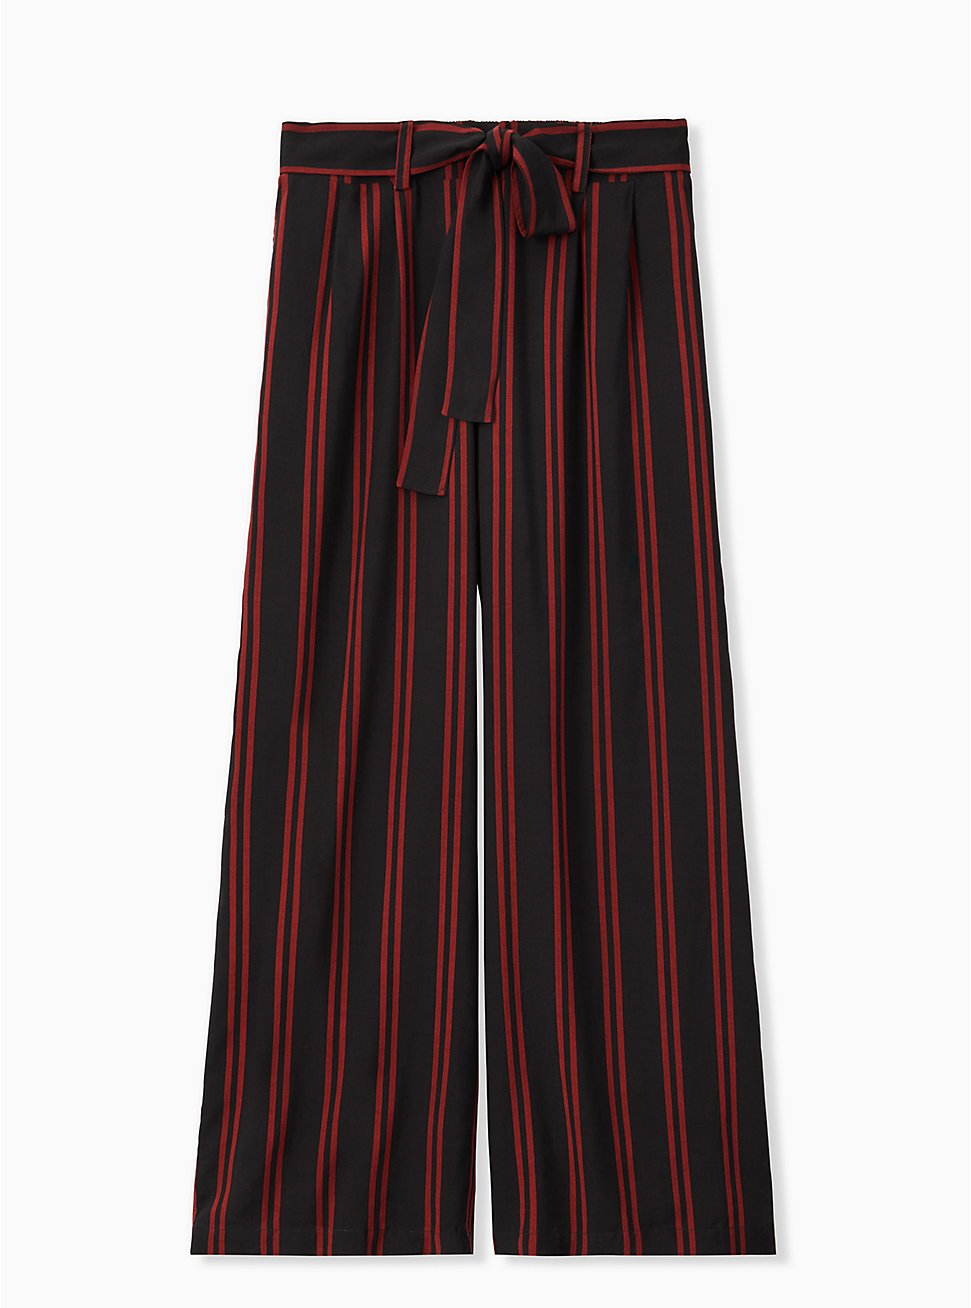 Black & Red Stripe Challis Self Tie Wide Leg Pant, STRIPES, hi-res